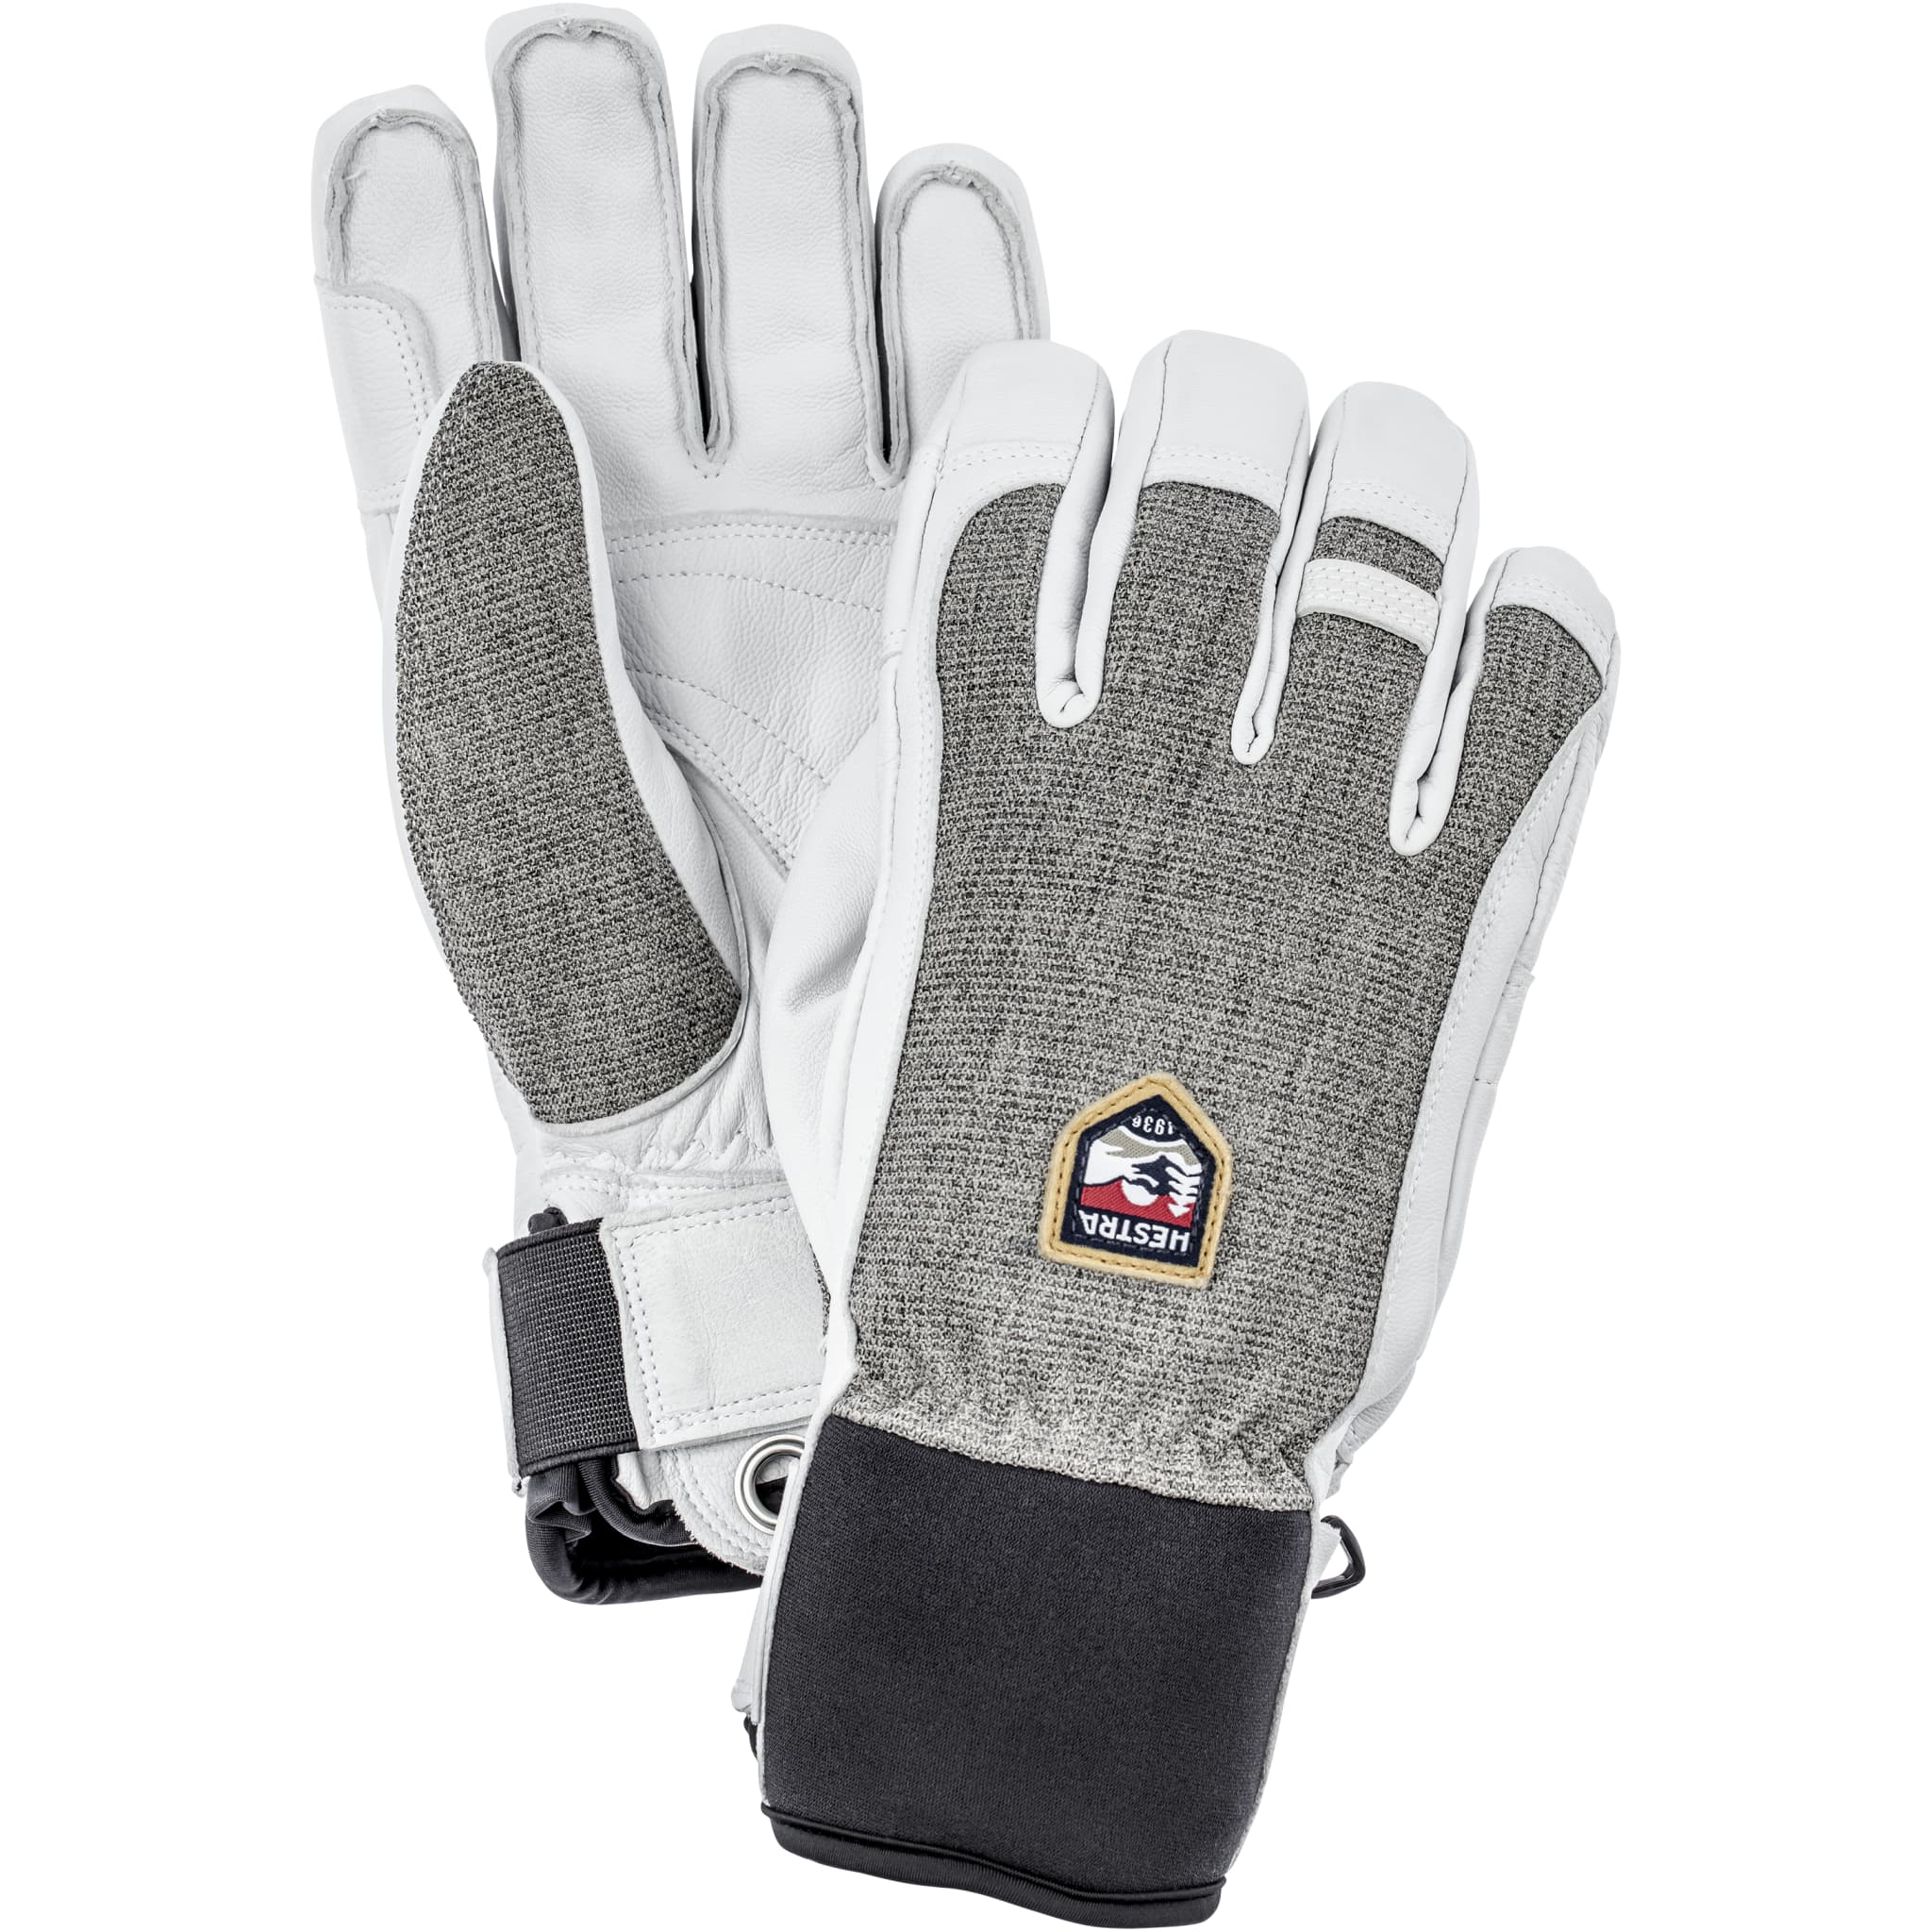 Army Leather Patrol Gloves